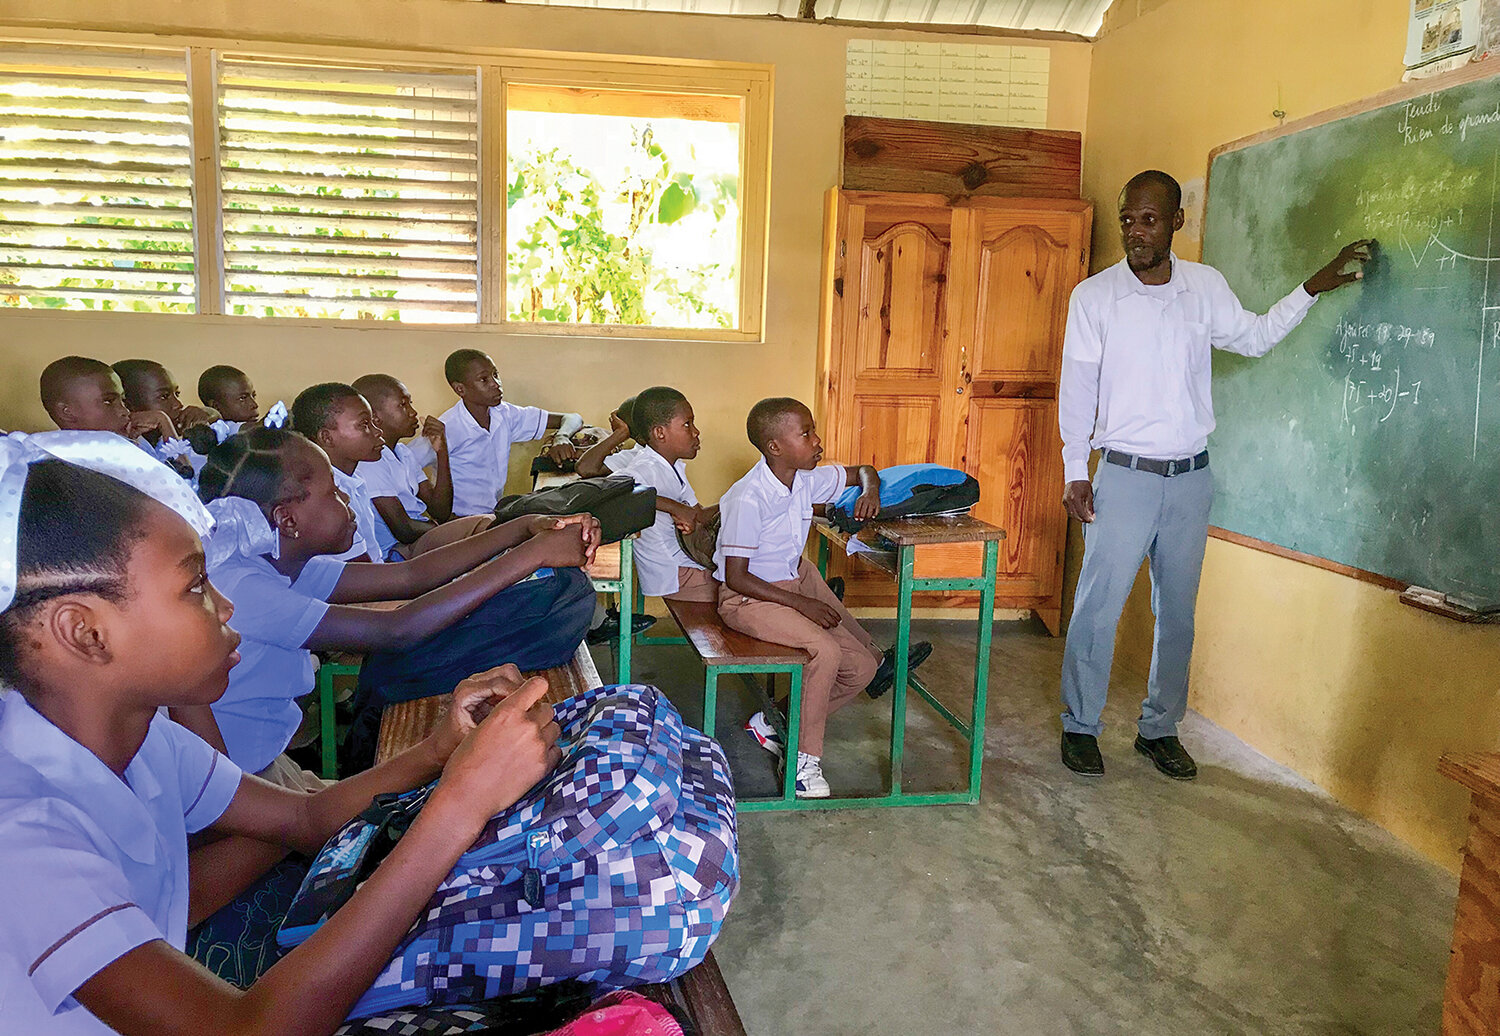 From the classroom we begin a revolution in the mind and heart as our students grow and learn to be new leaders for Haiti.